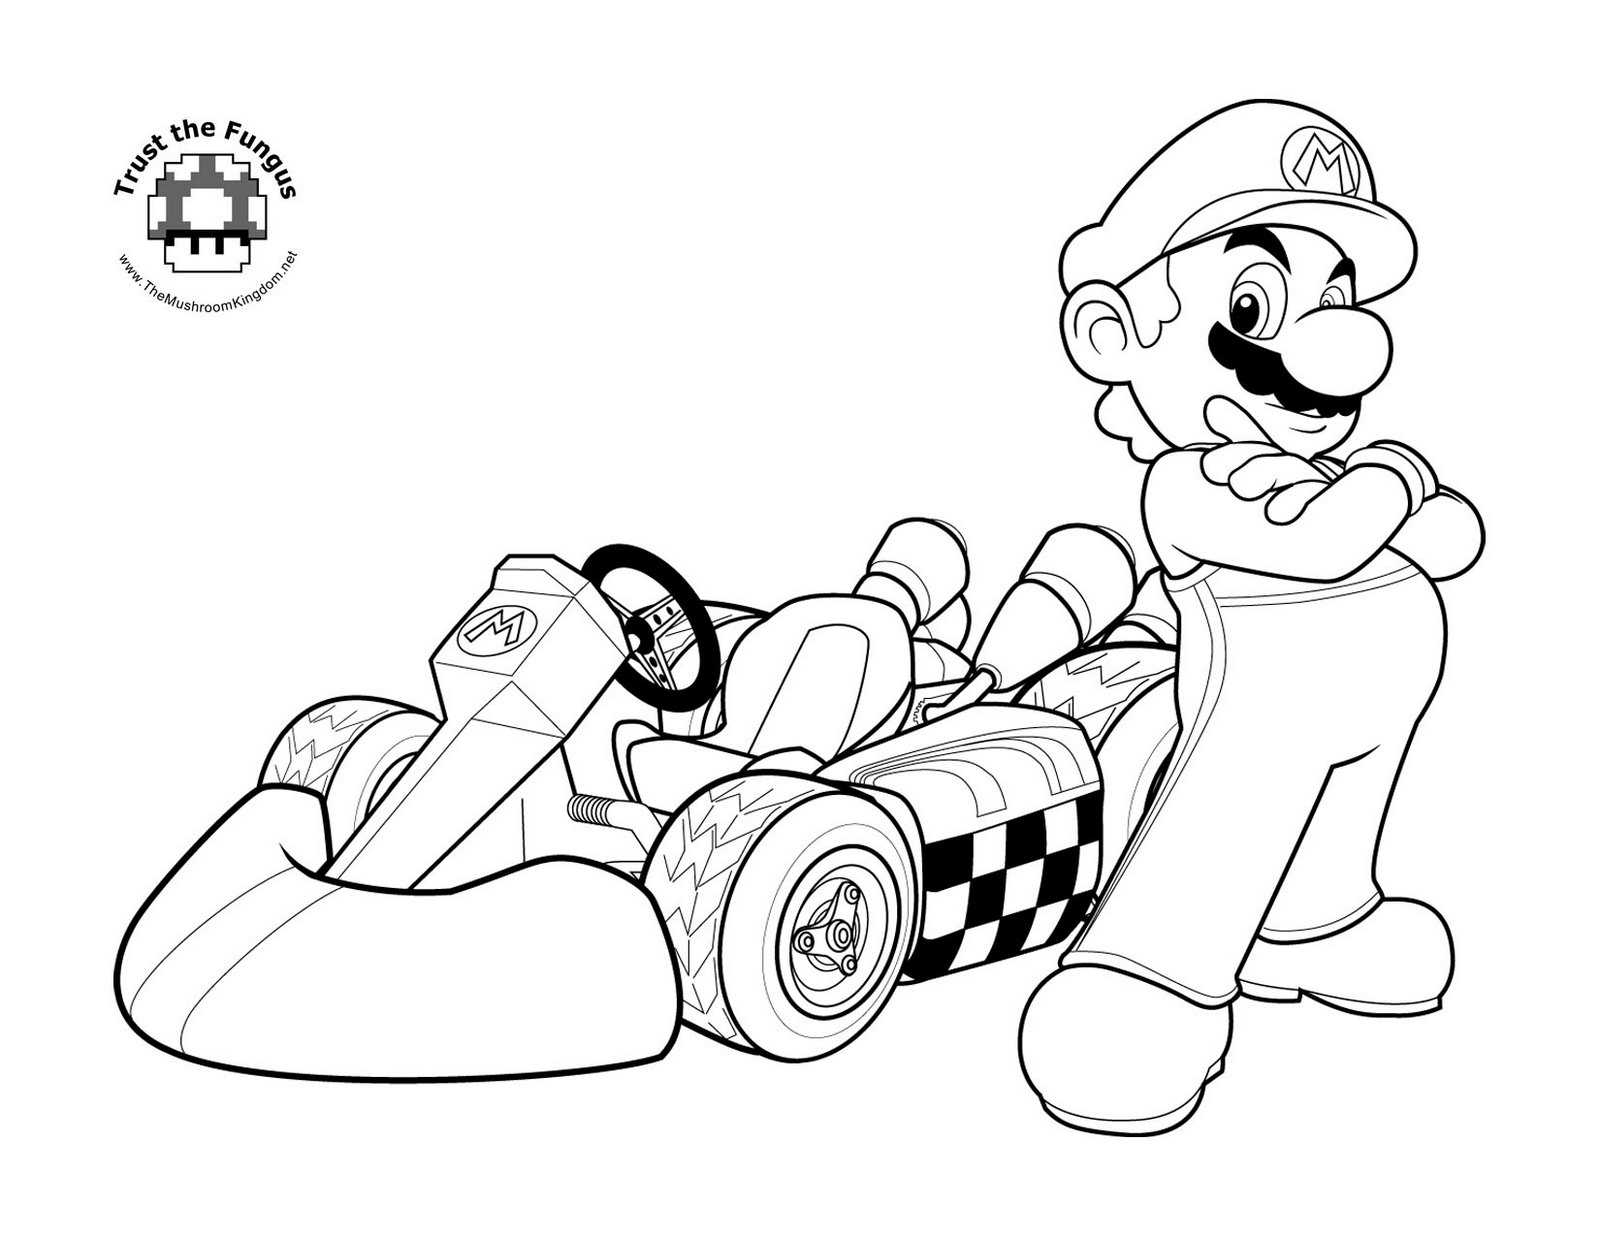 mario coloring coloring pages mario coloring pages free and printable mario coloring 1 3